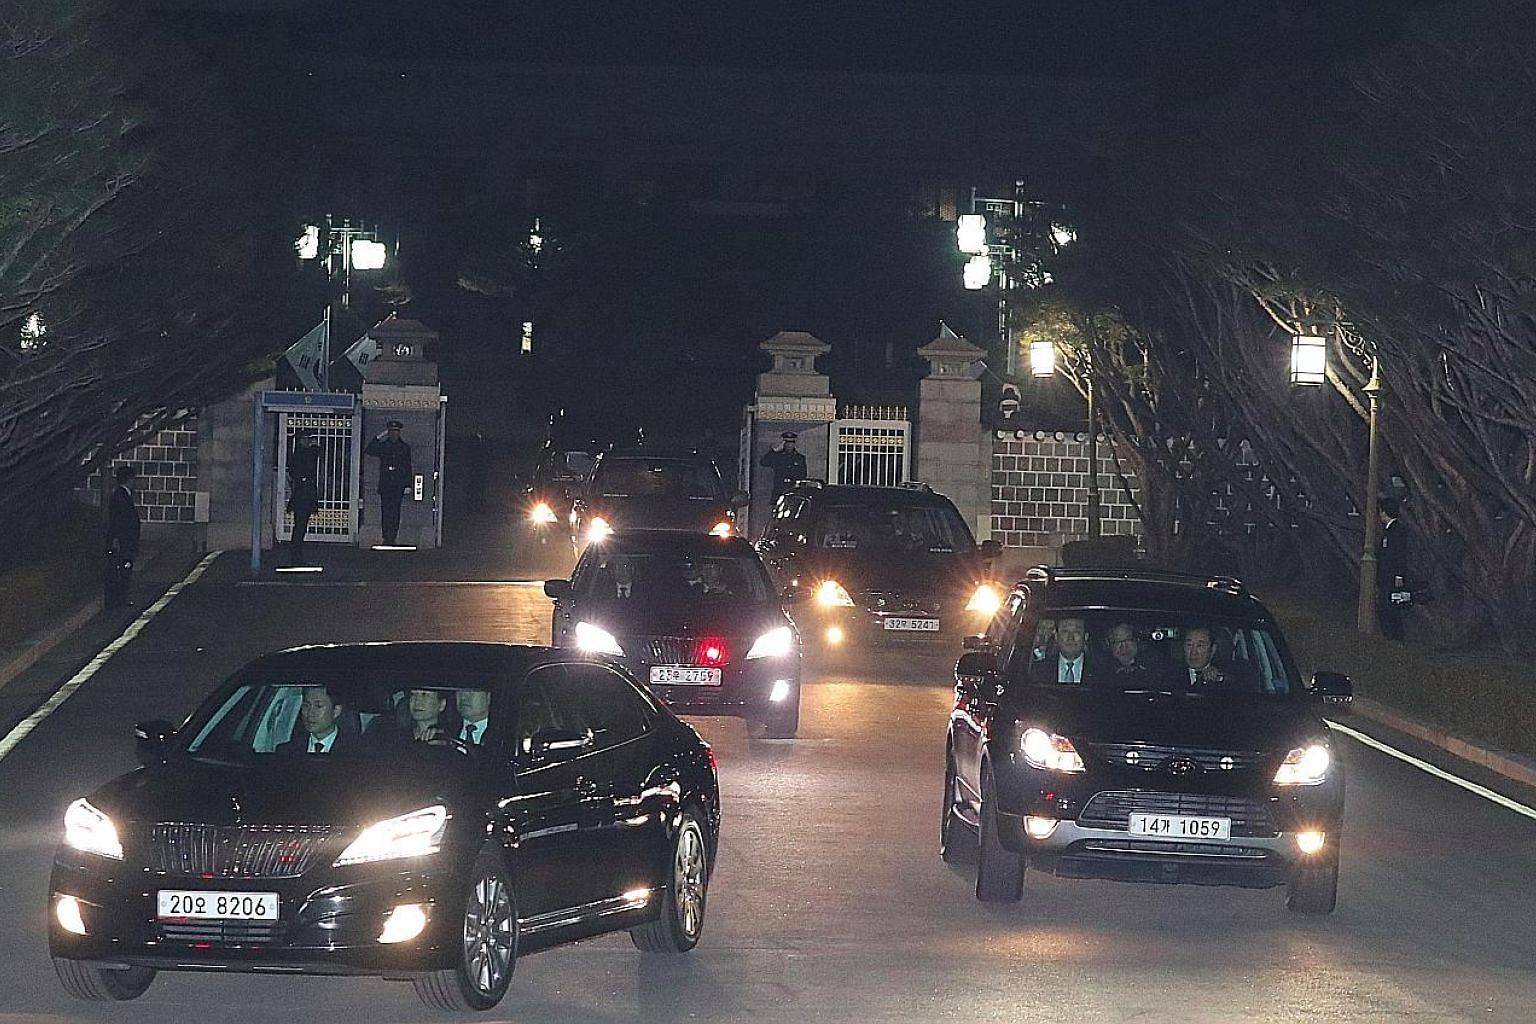 South Korea's impeached president Park Geun Hye (in car at left) being driven away from the presidential Blue House as she returned to her private residence in Seoul on Sunday, two days after the Constitutional Court's verdict confirming her removal